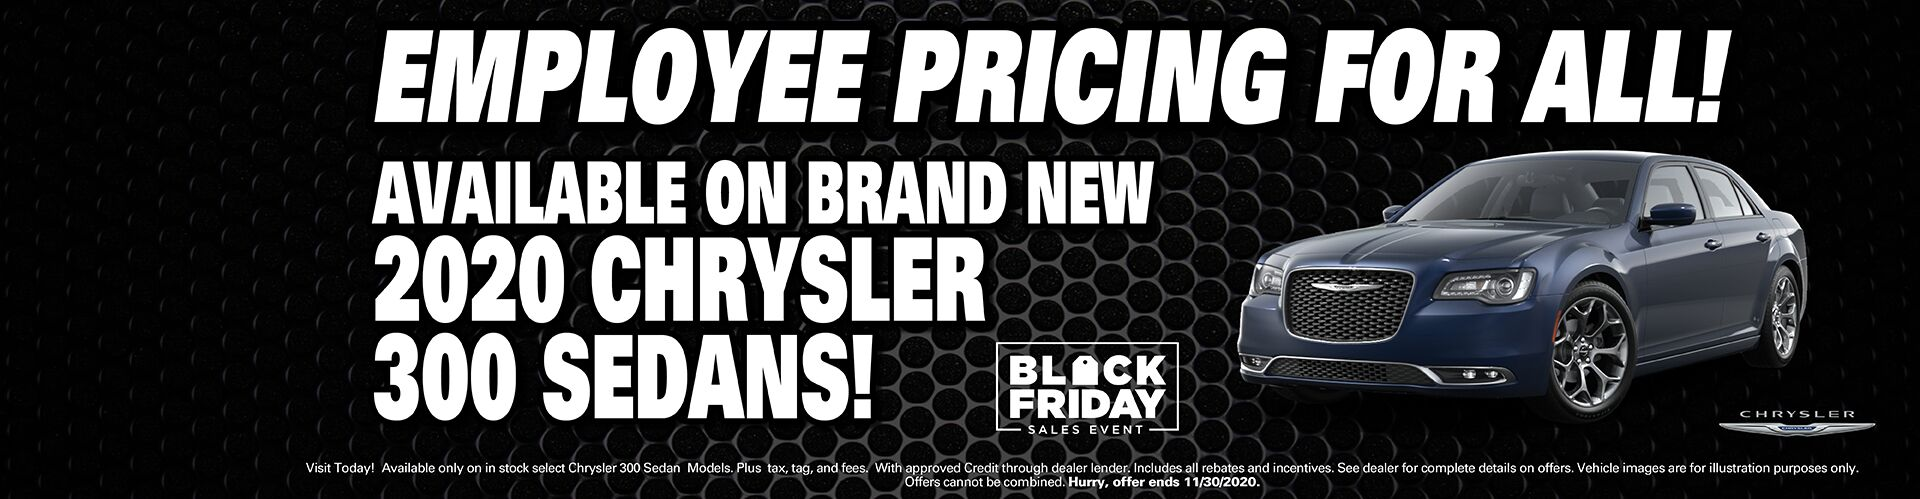 Just Announced! - Employee Pricing On New Chrysler 300s